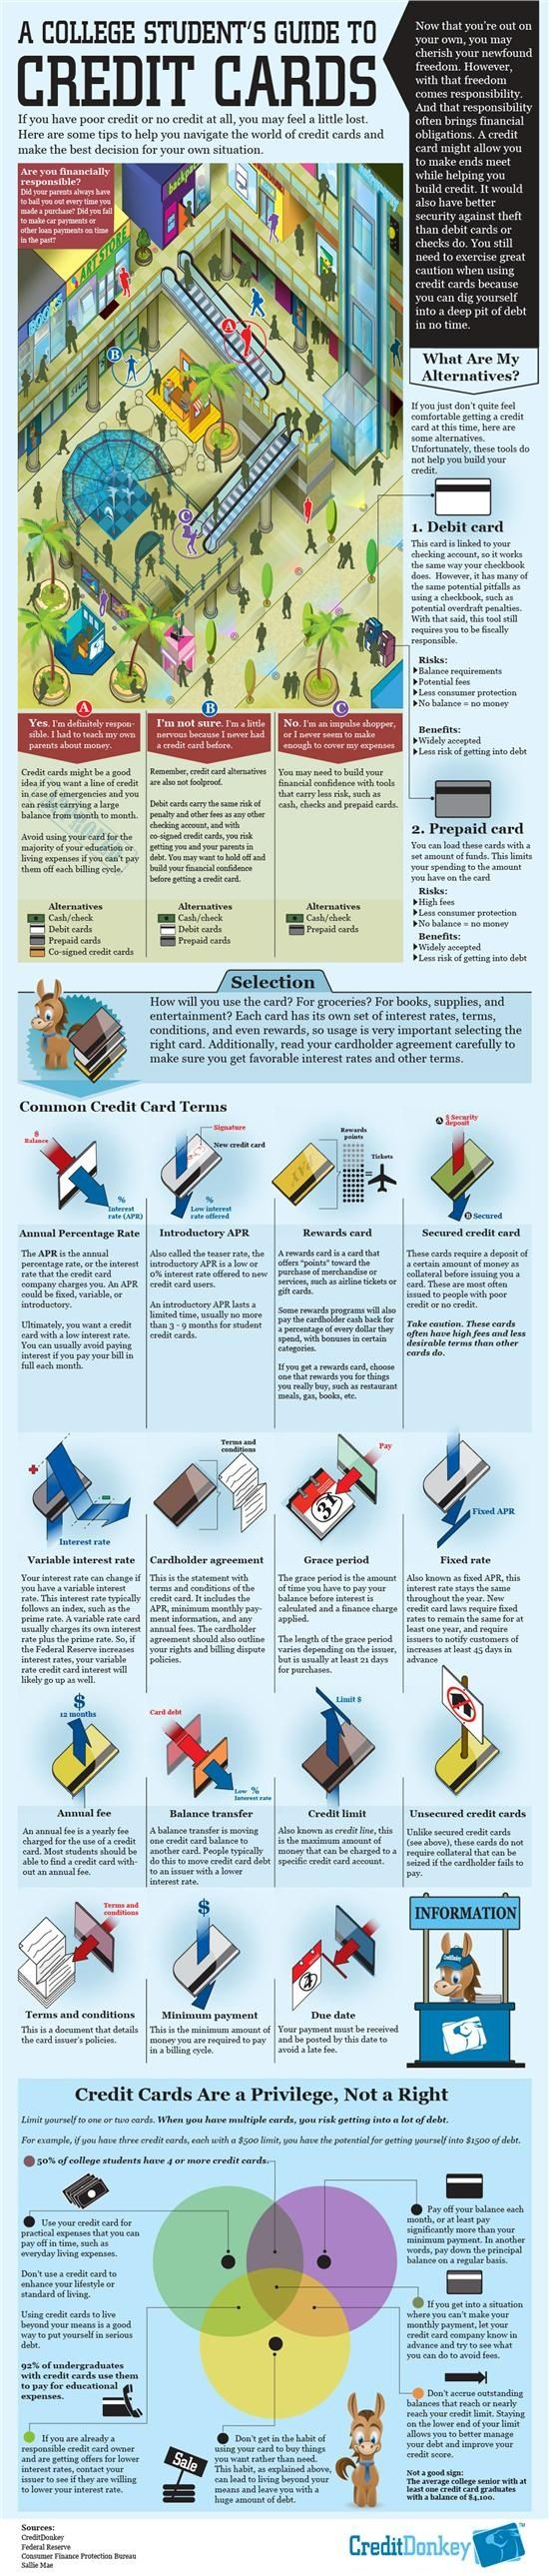 A Student's Guide to Credit Cards (infographic) (from Credit Donkey) refinance credit card debt, pay off credit card debt #debt #credit #payoffdebt